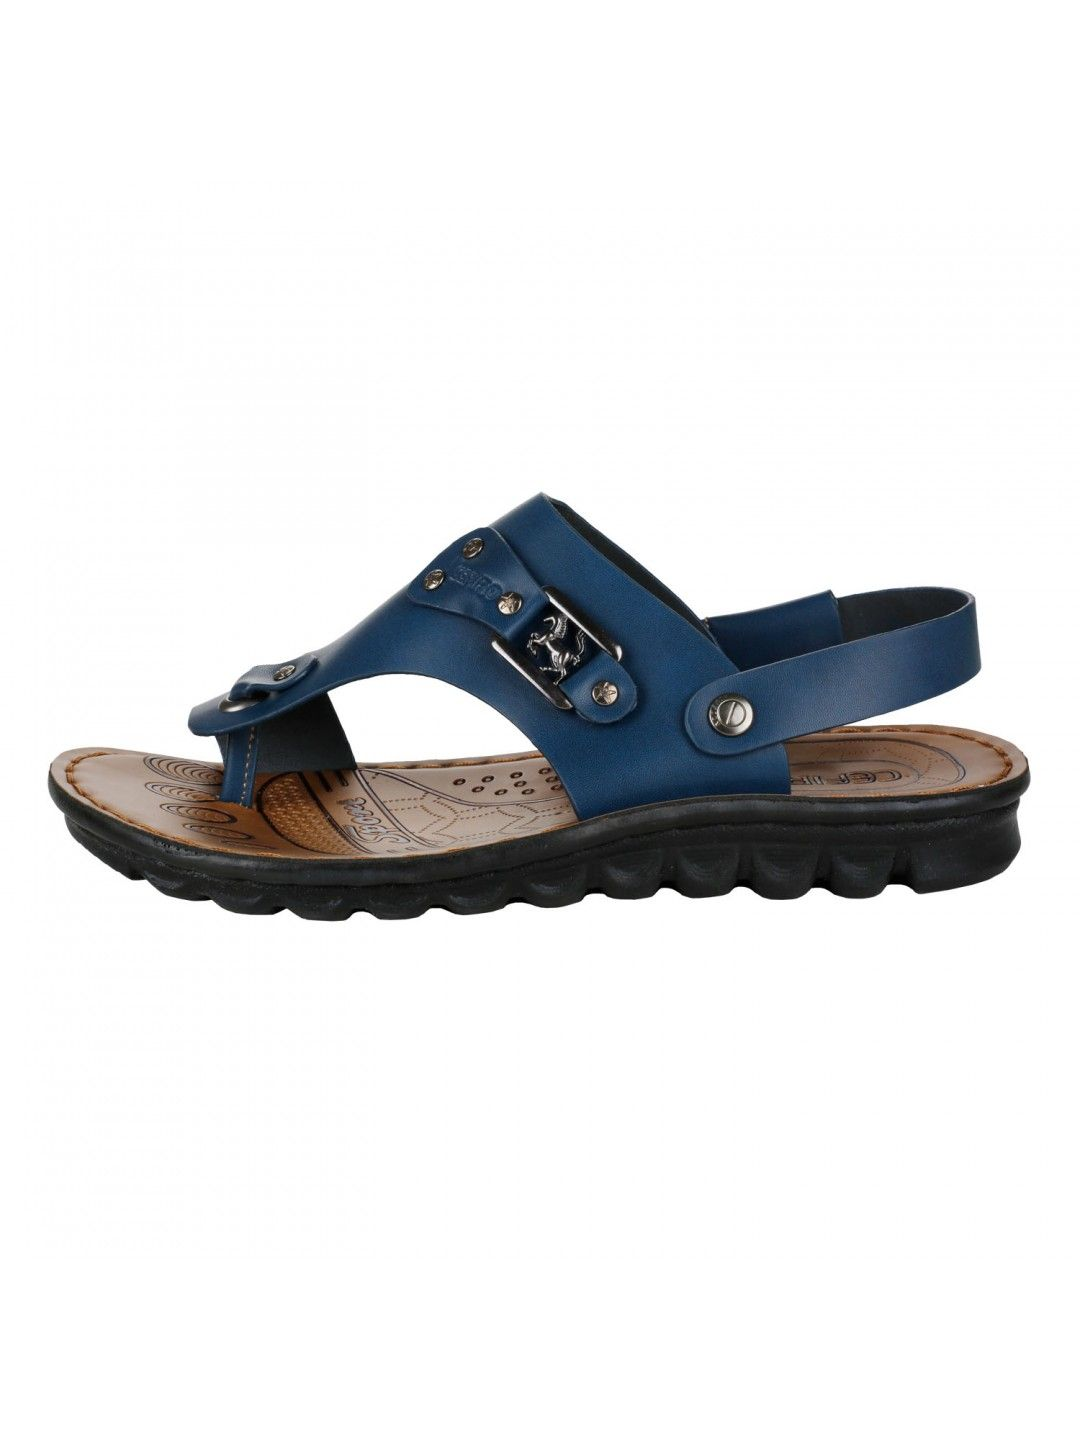 s sport for iv sandals com flops most flip comfortable mens men under armour ignite amazon slide comforter slides dp